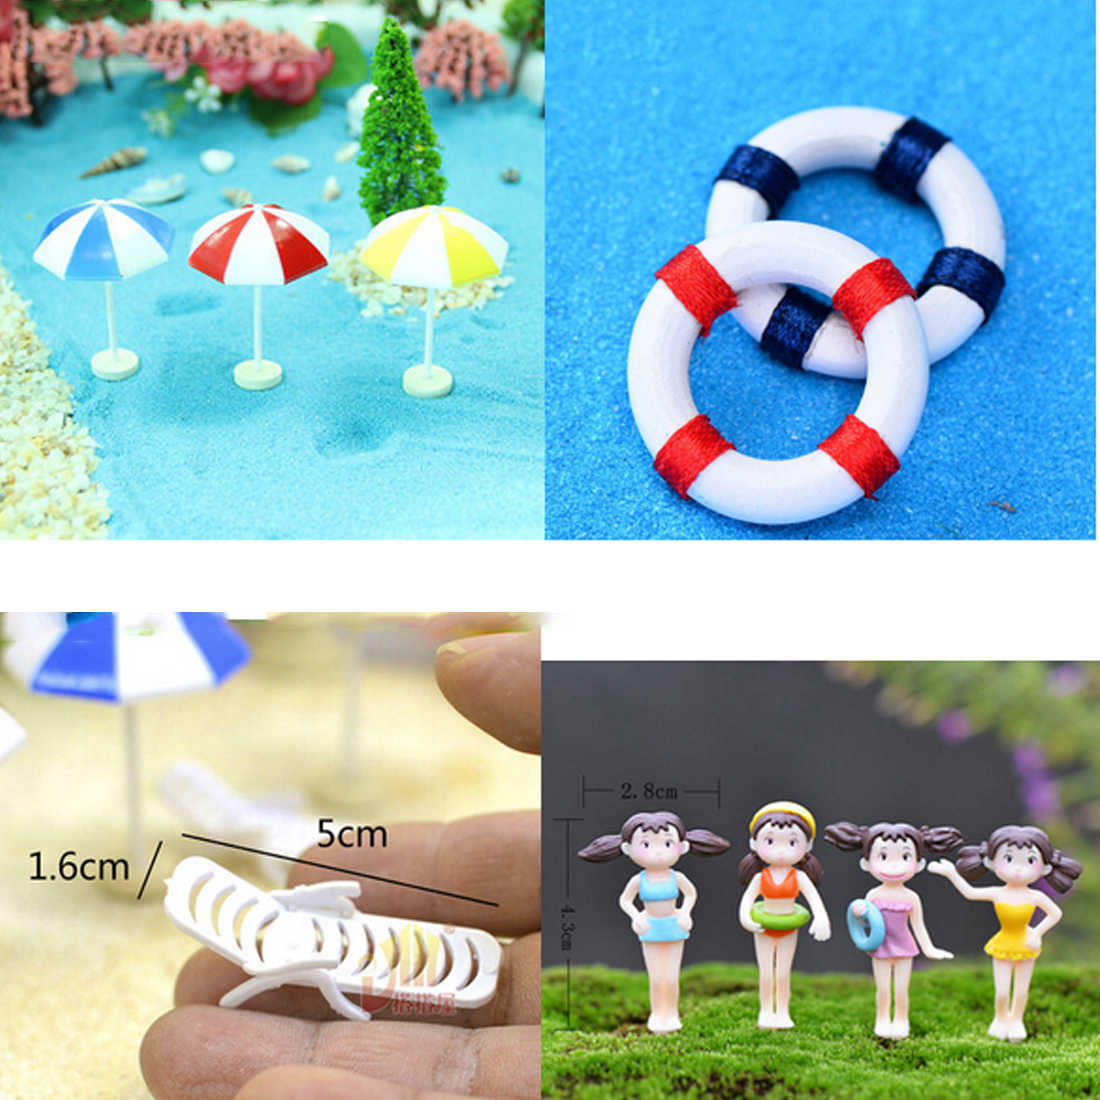 2018 New Mini Artificial Beach Chair Bench Micro Fairy Garden Figurine Miniature/Terrarium/Doll House Decoration Ornament DIY